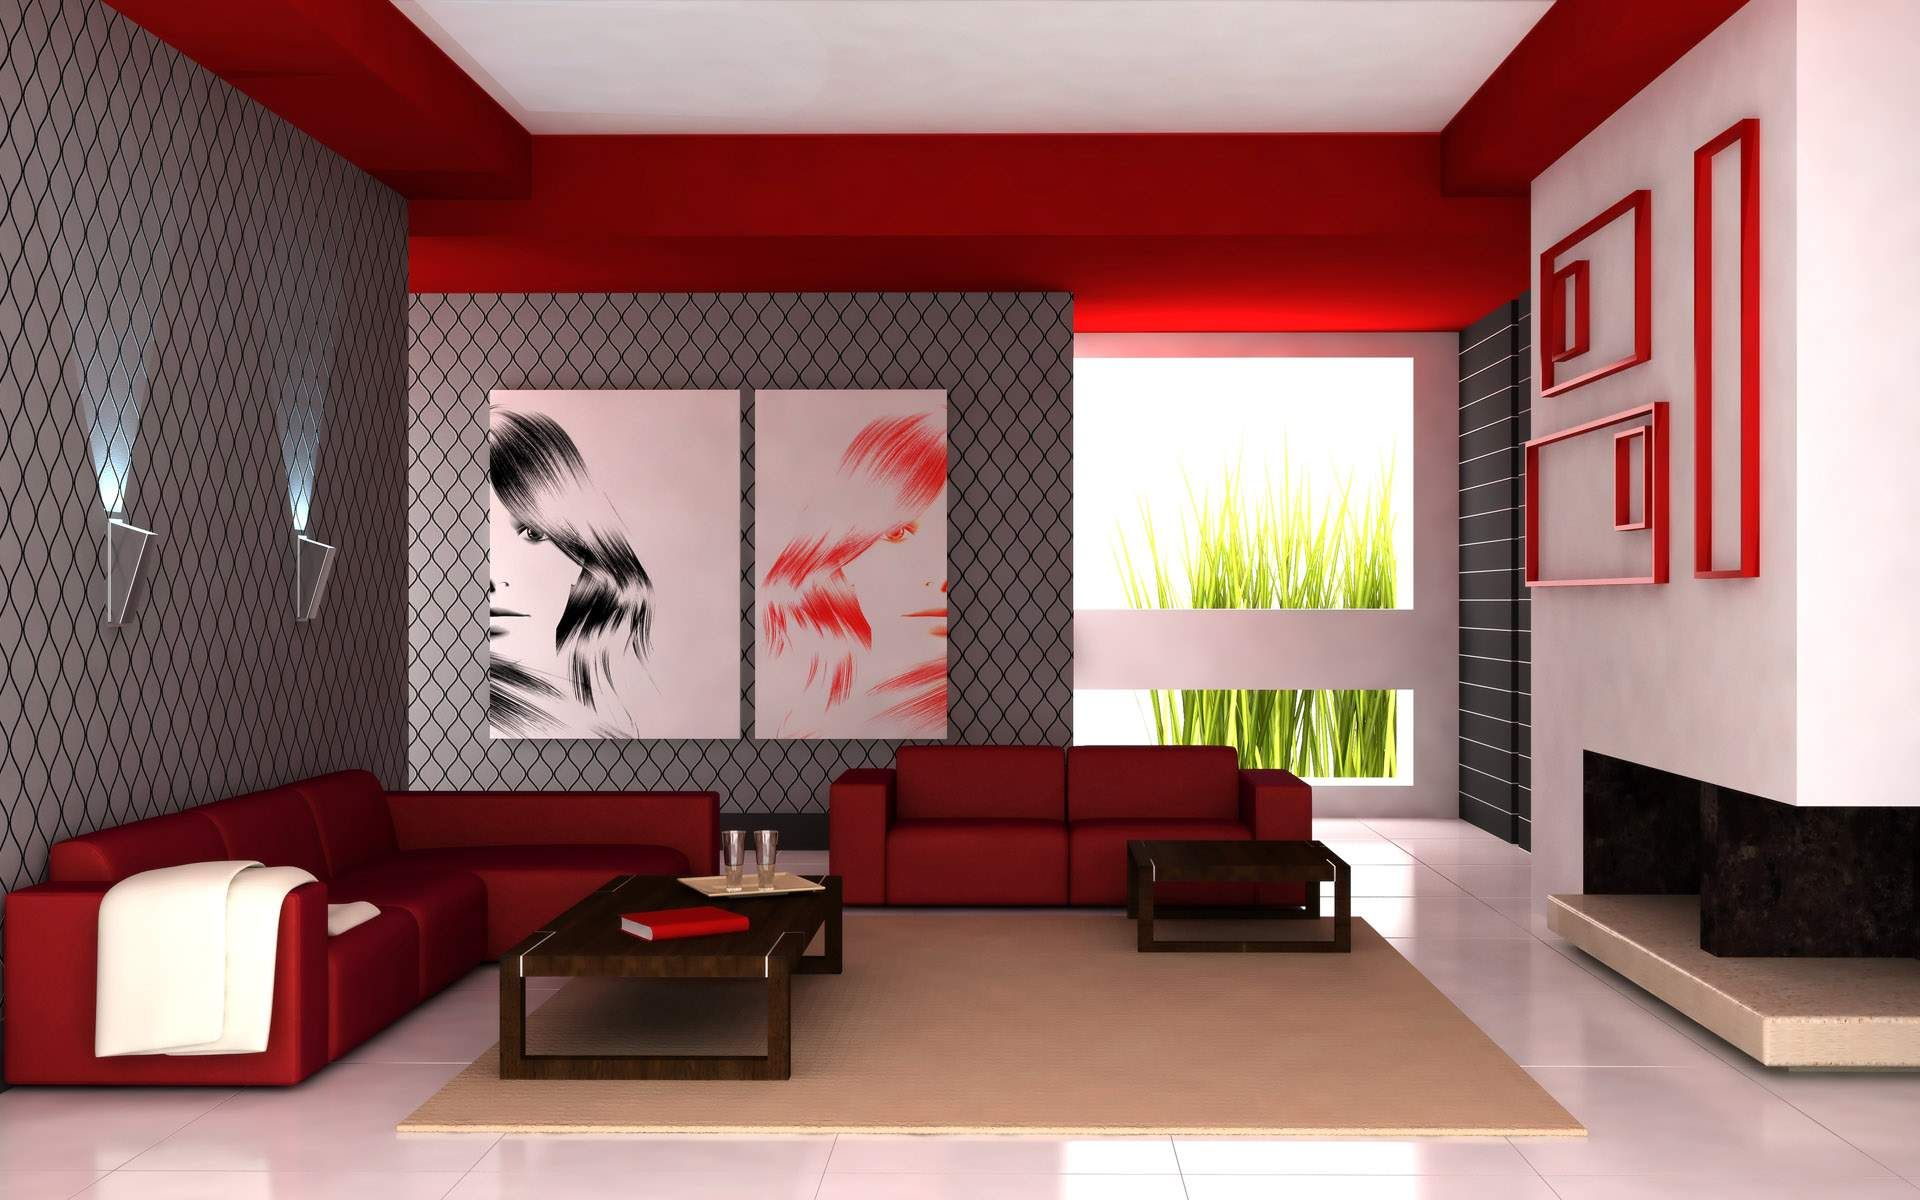 Cool Living Room Interior With Flashy Red Color